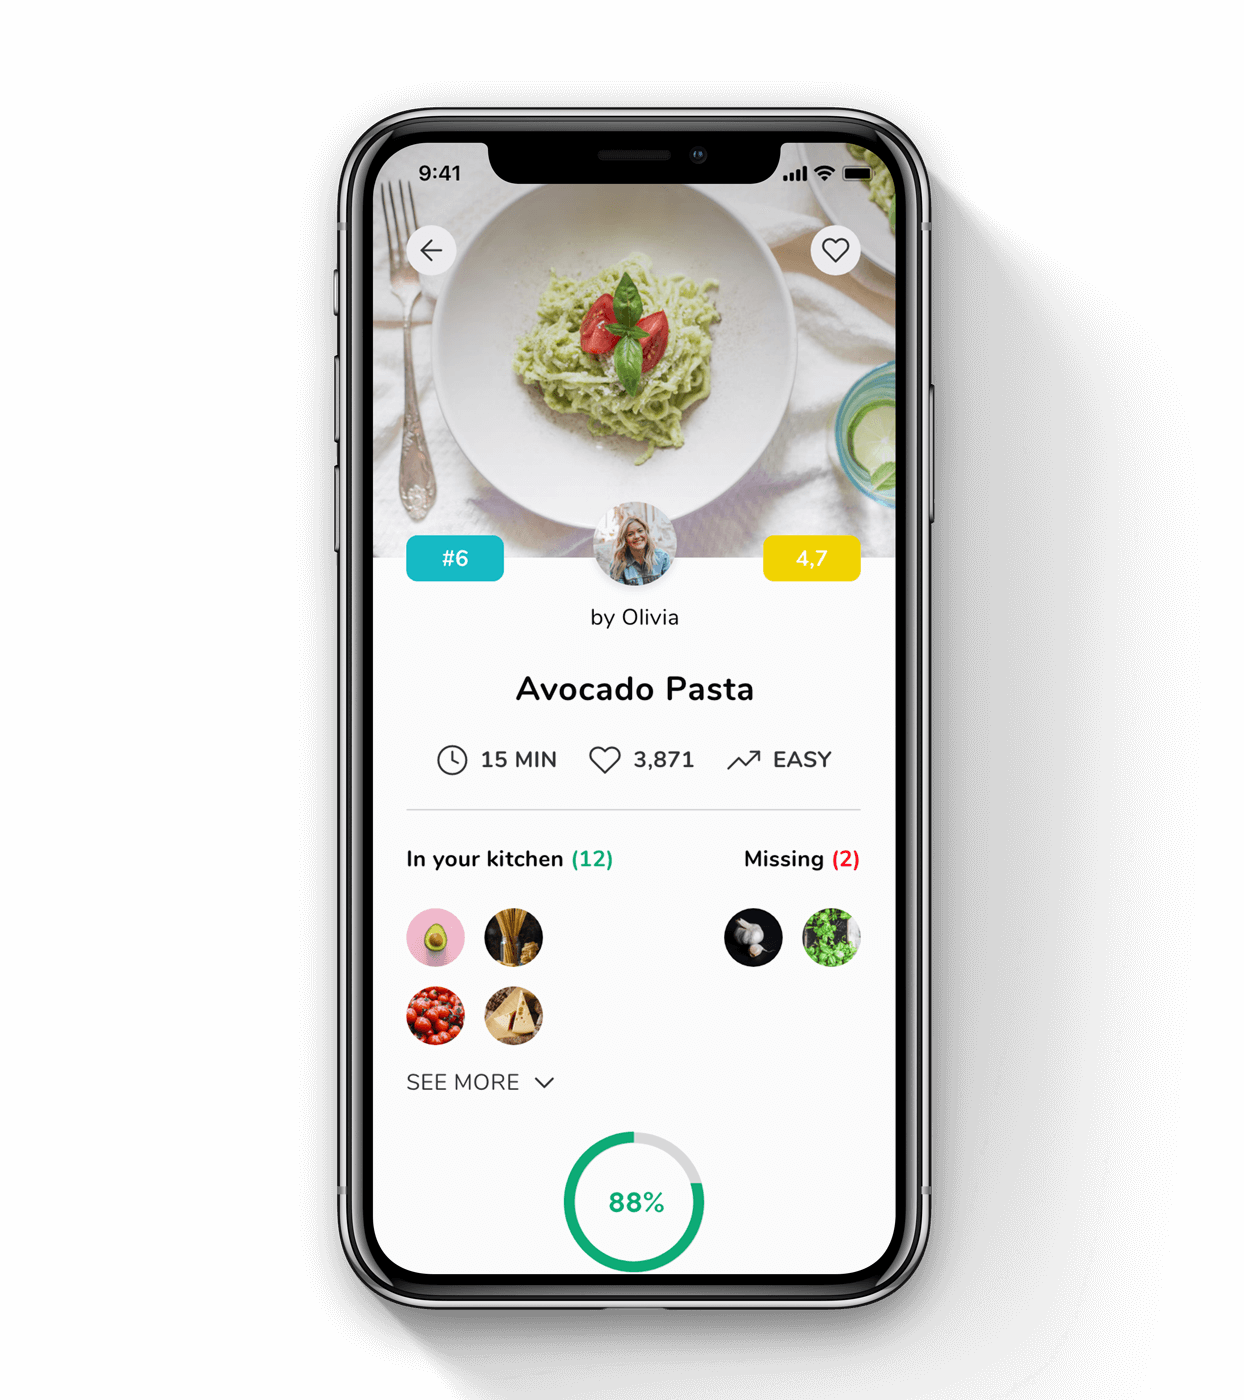 Image of the phone with recipe app product page